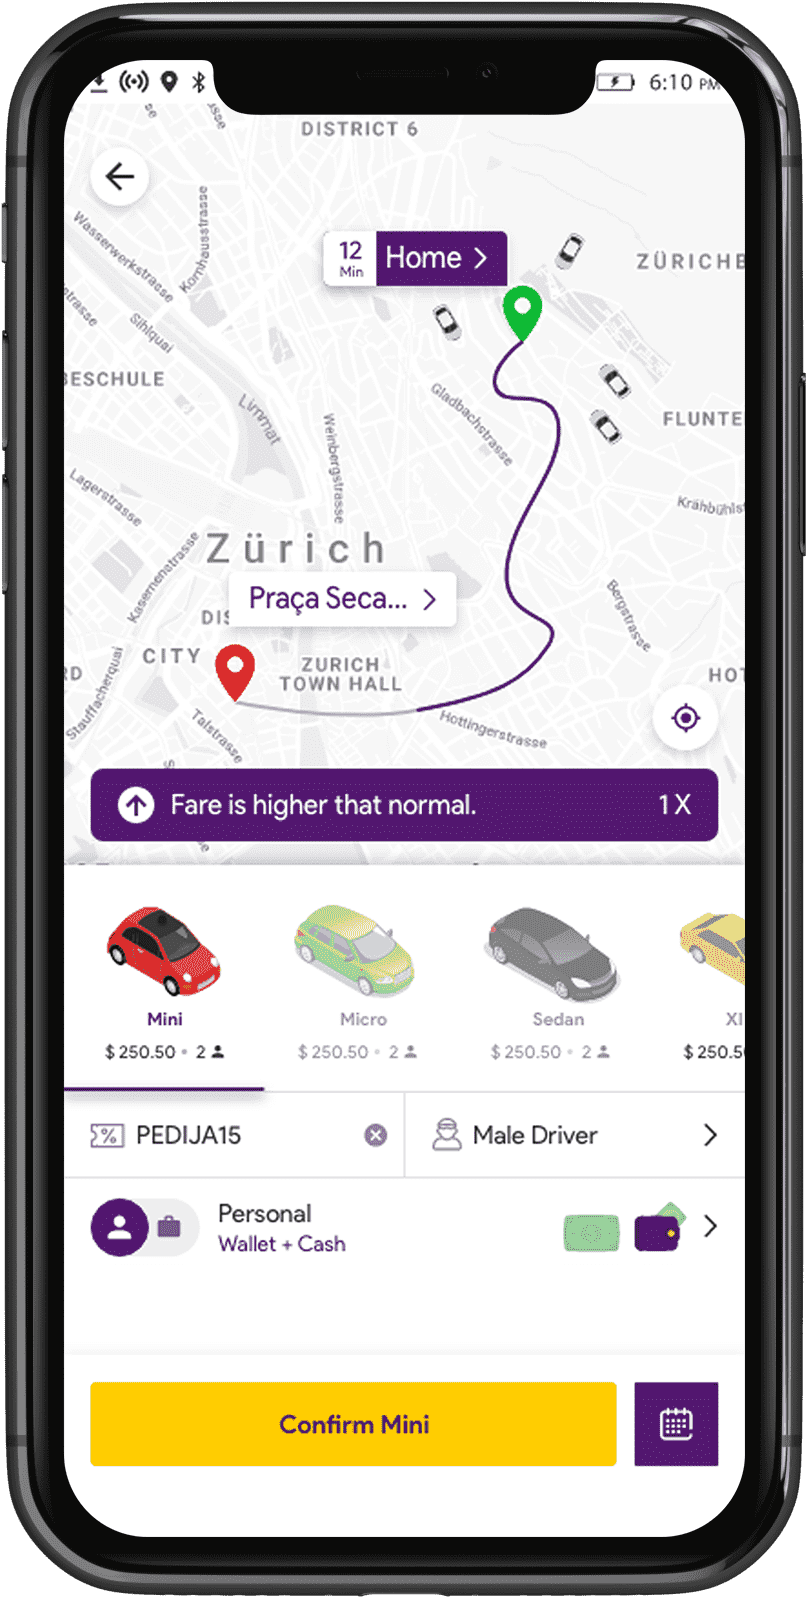 select-type-of-veichle-in-ride-sharing-customer-app.png